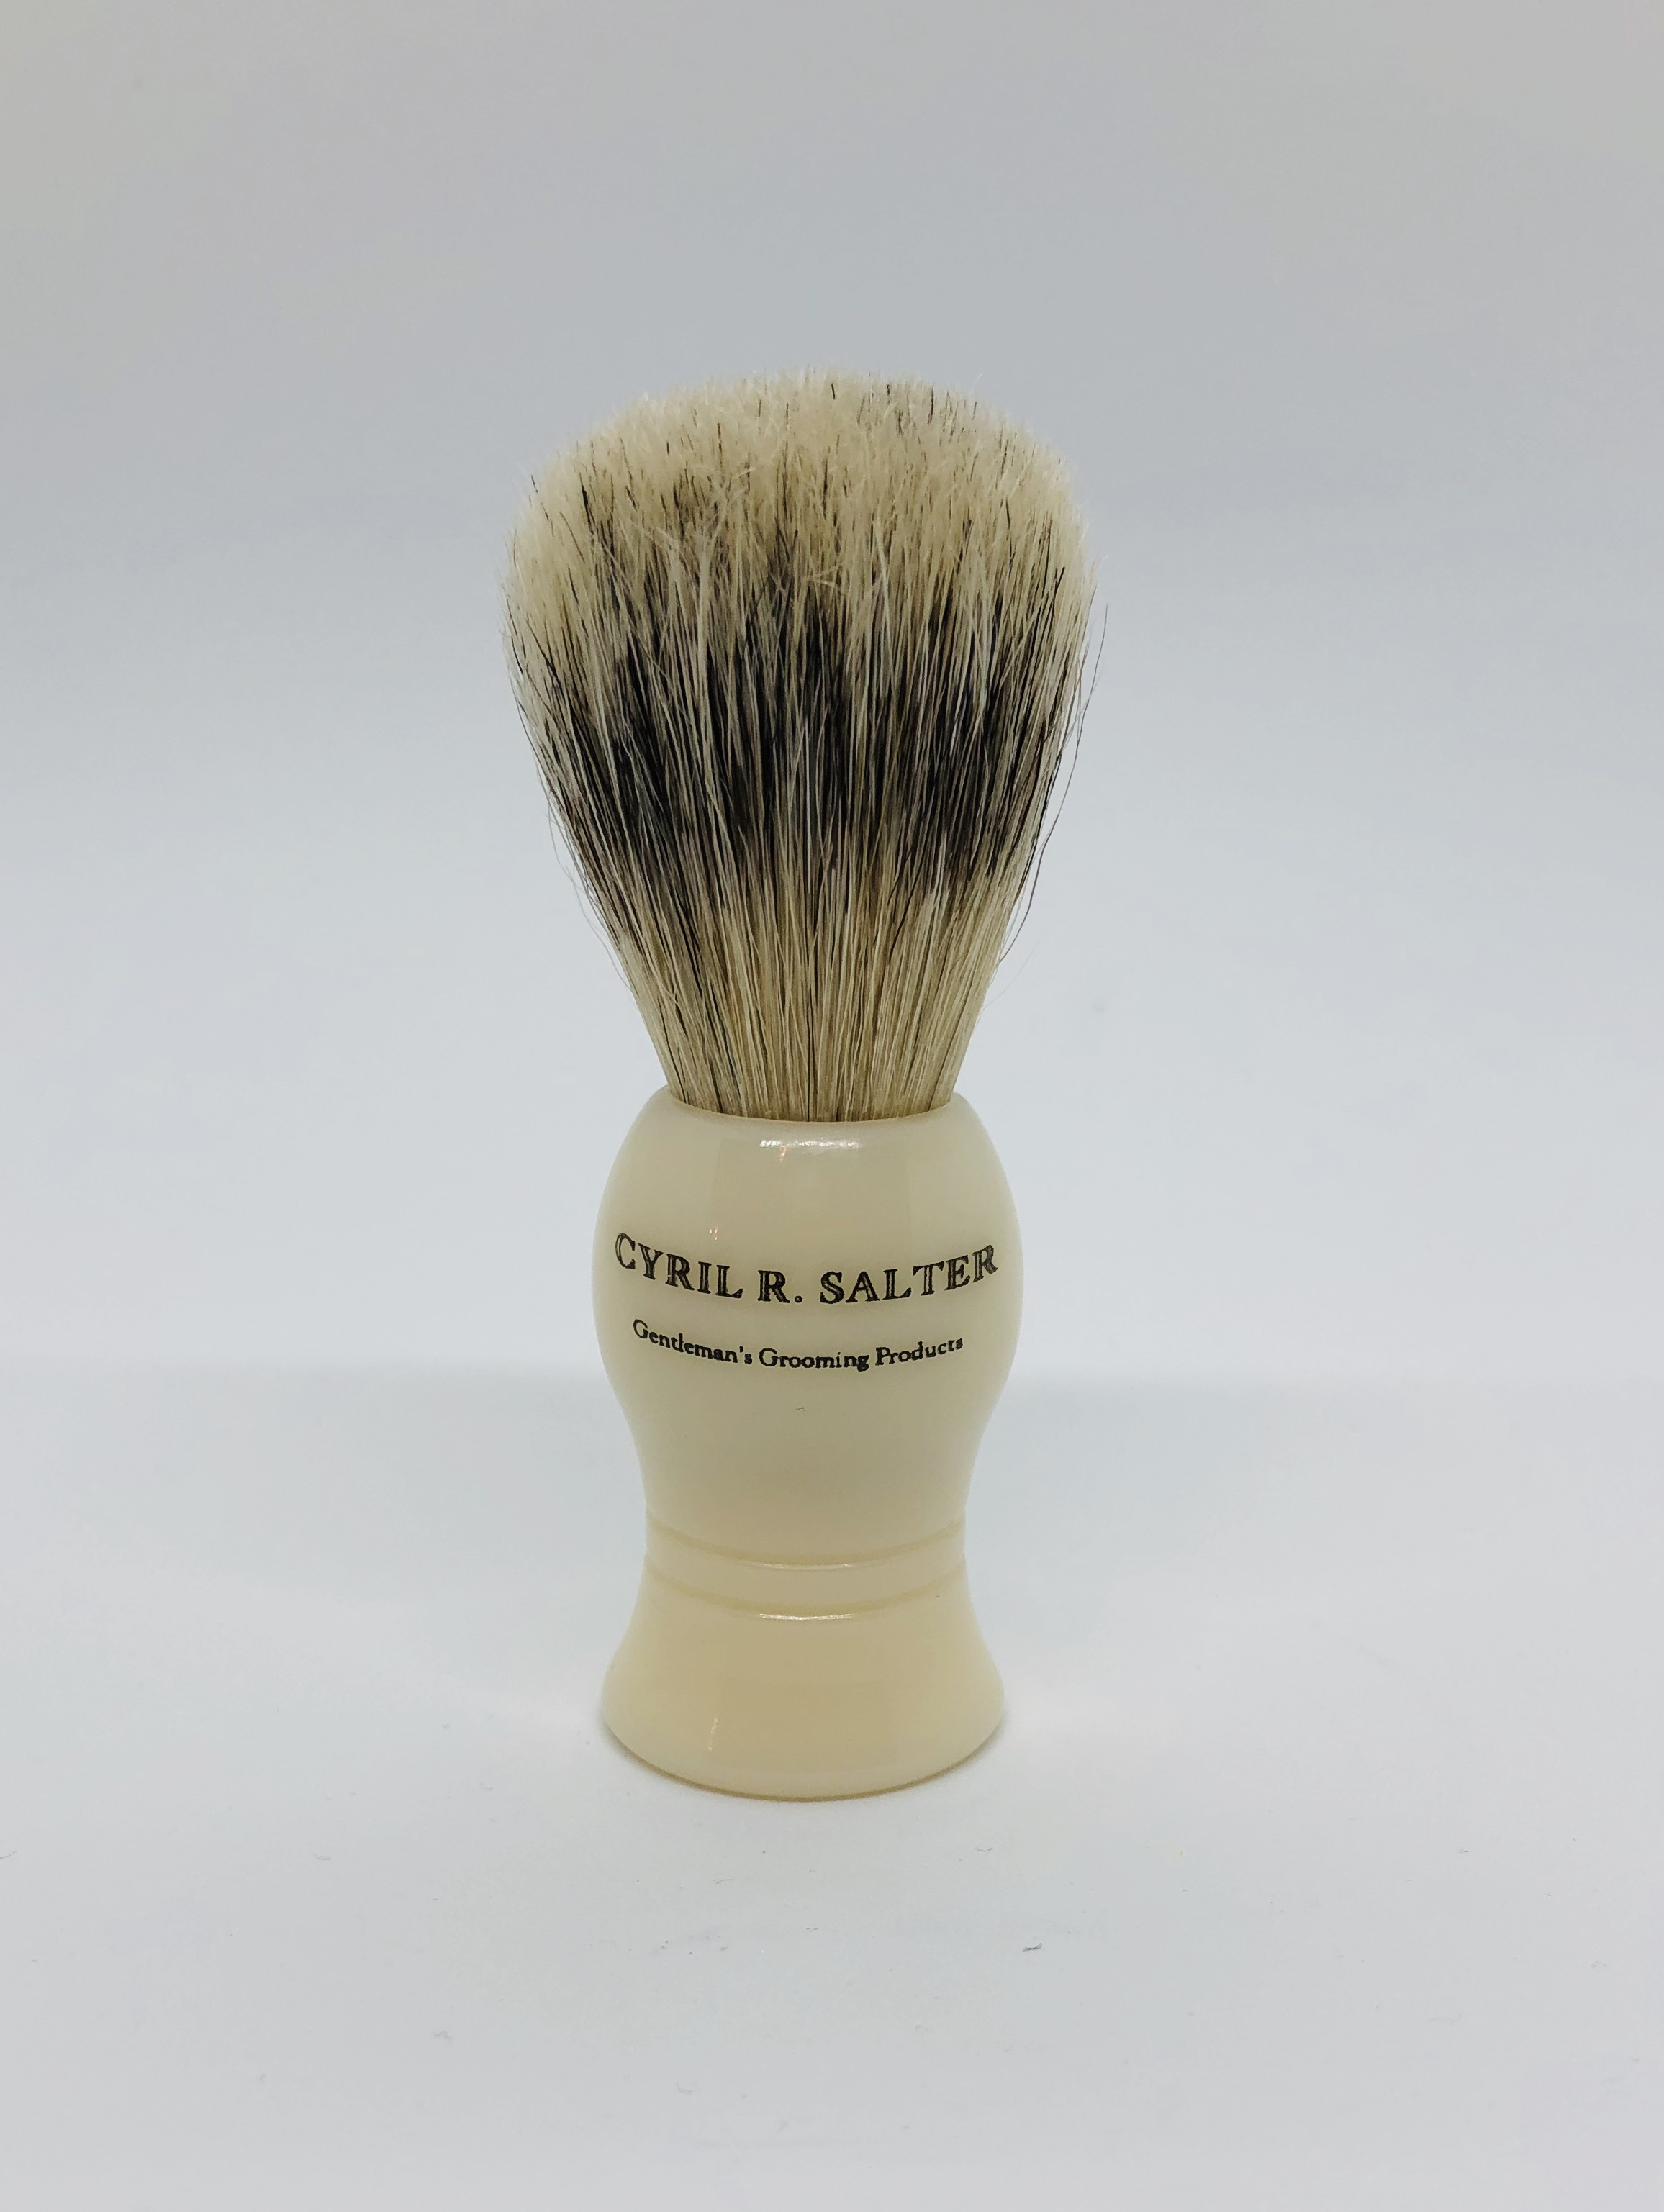 Cyril cream bristle & badger brush